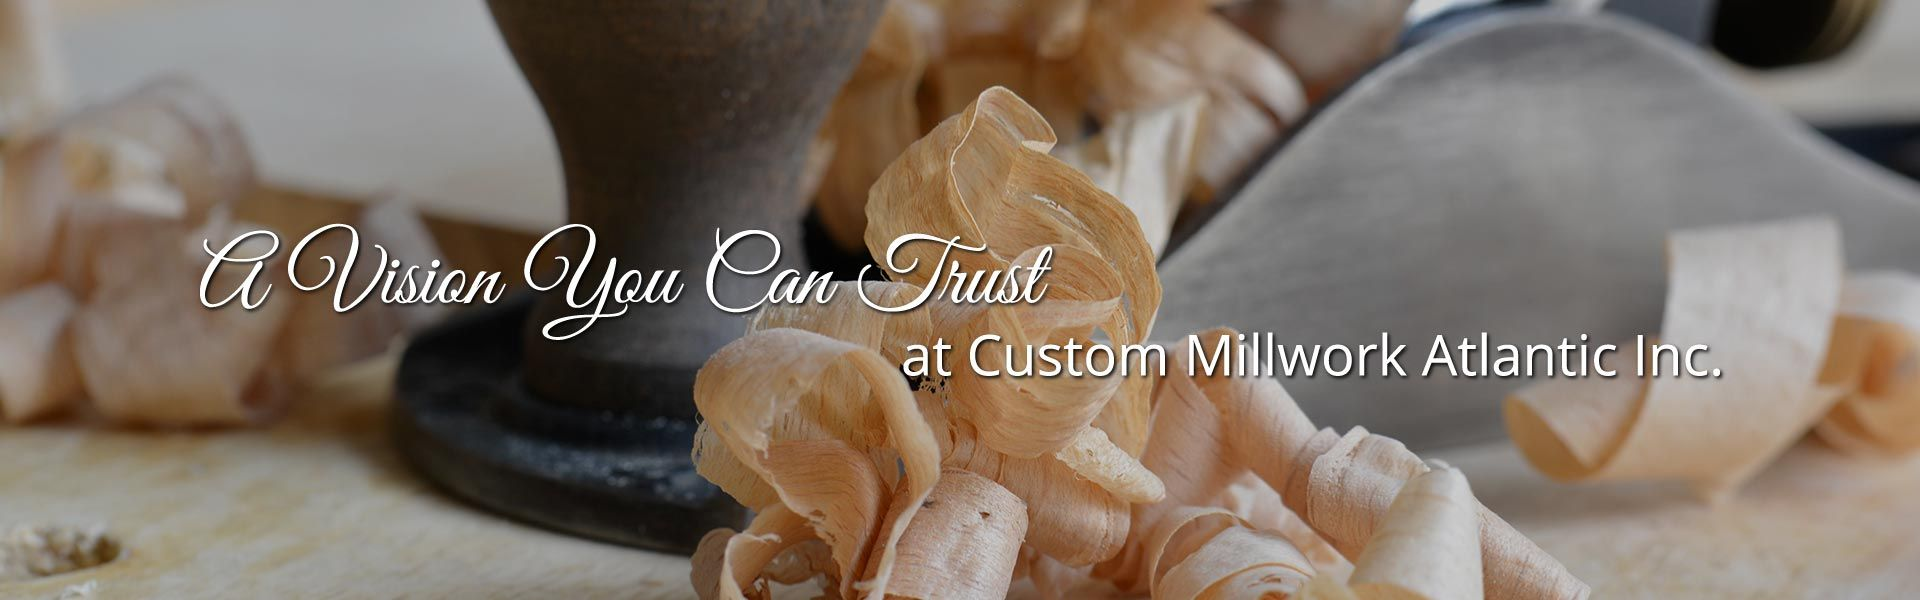 A Vision You Can Trust at Custom Millwork Atlantic Inc. | wood plainer and wood shavings